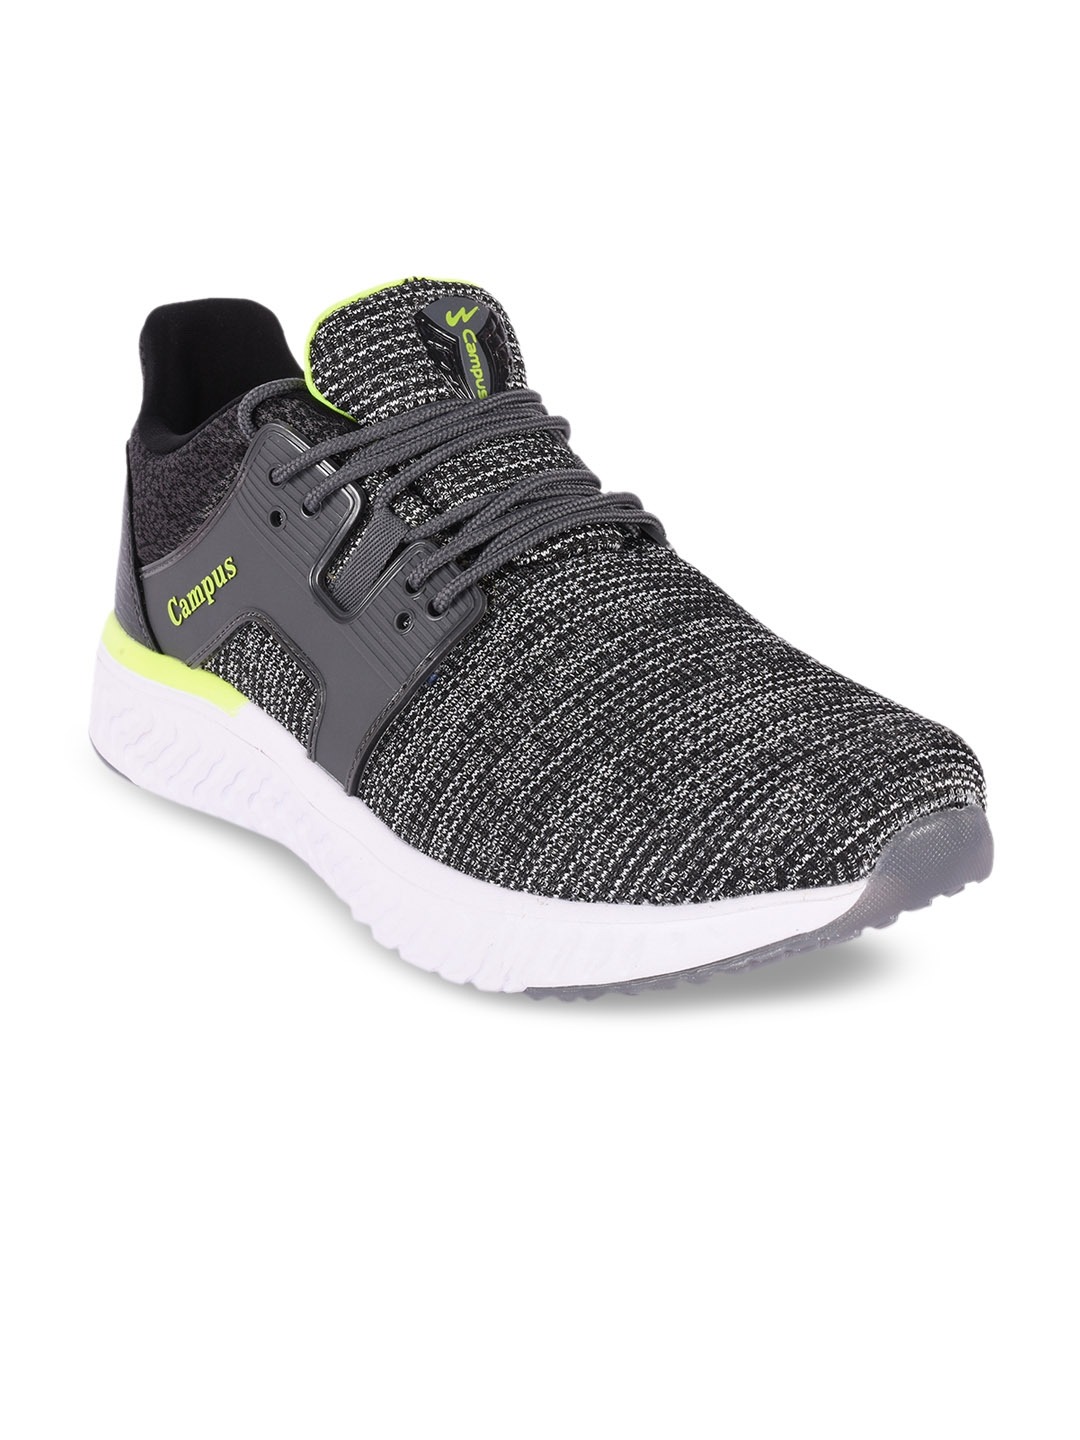 4f653bb96cf3 Buy Campus Men Iconic Grey Running Shoes - Sports Shoes for Men ...